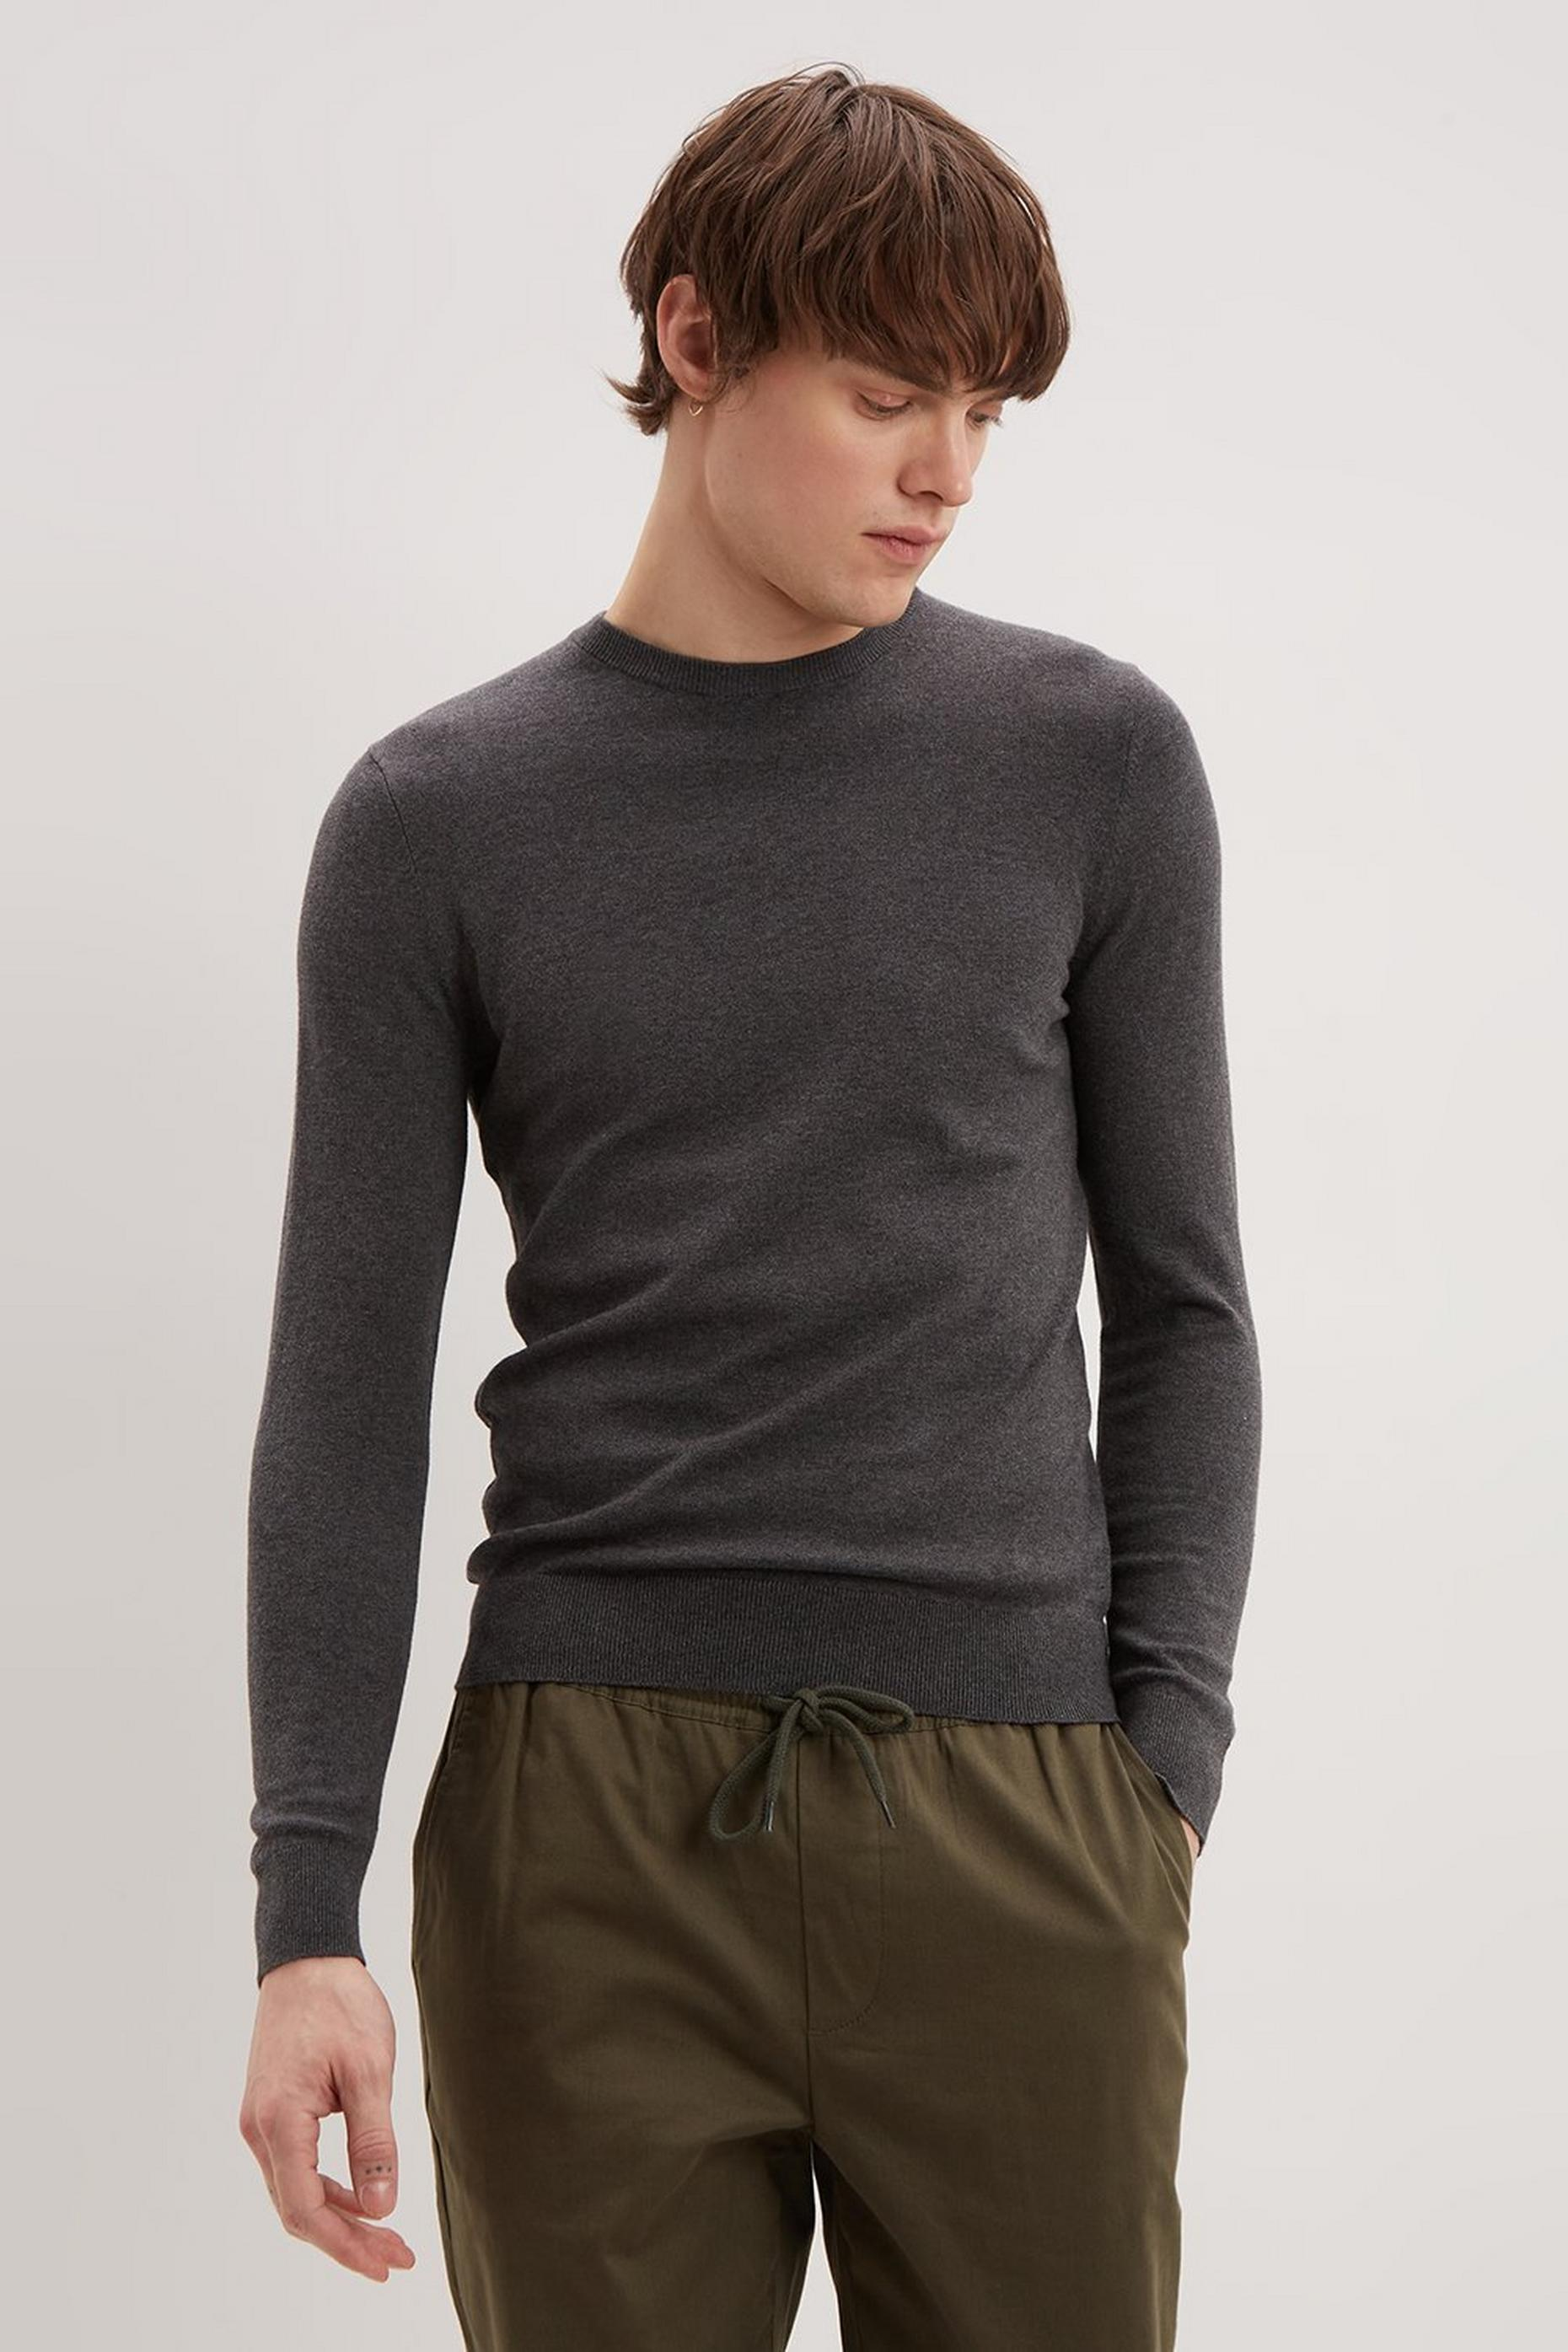 Charcoal Grey Crew Neck Jumper with Organic Cotton